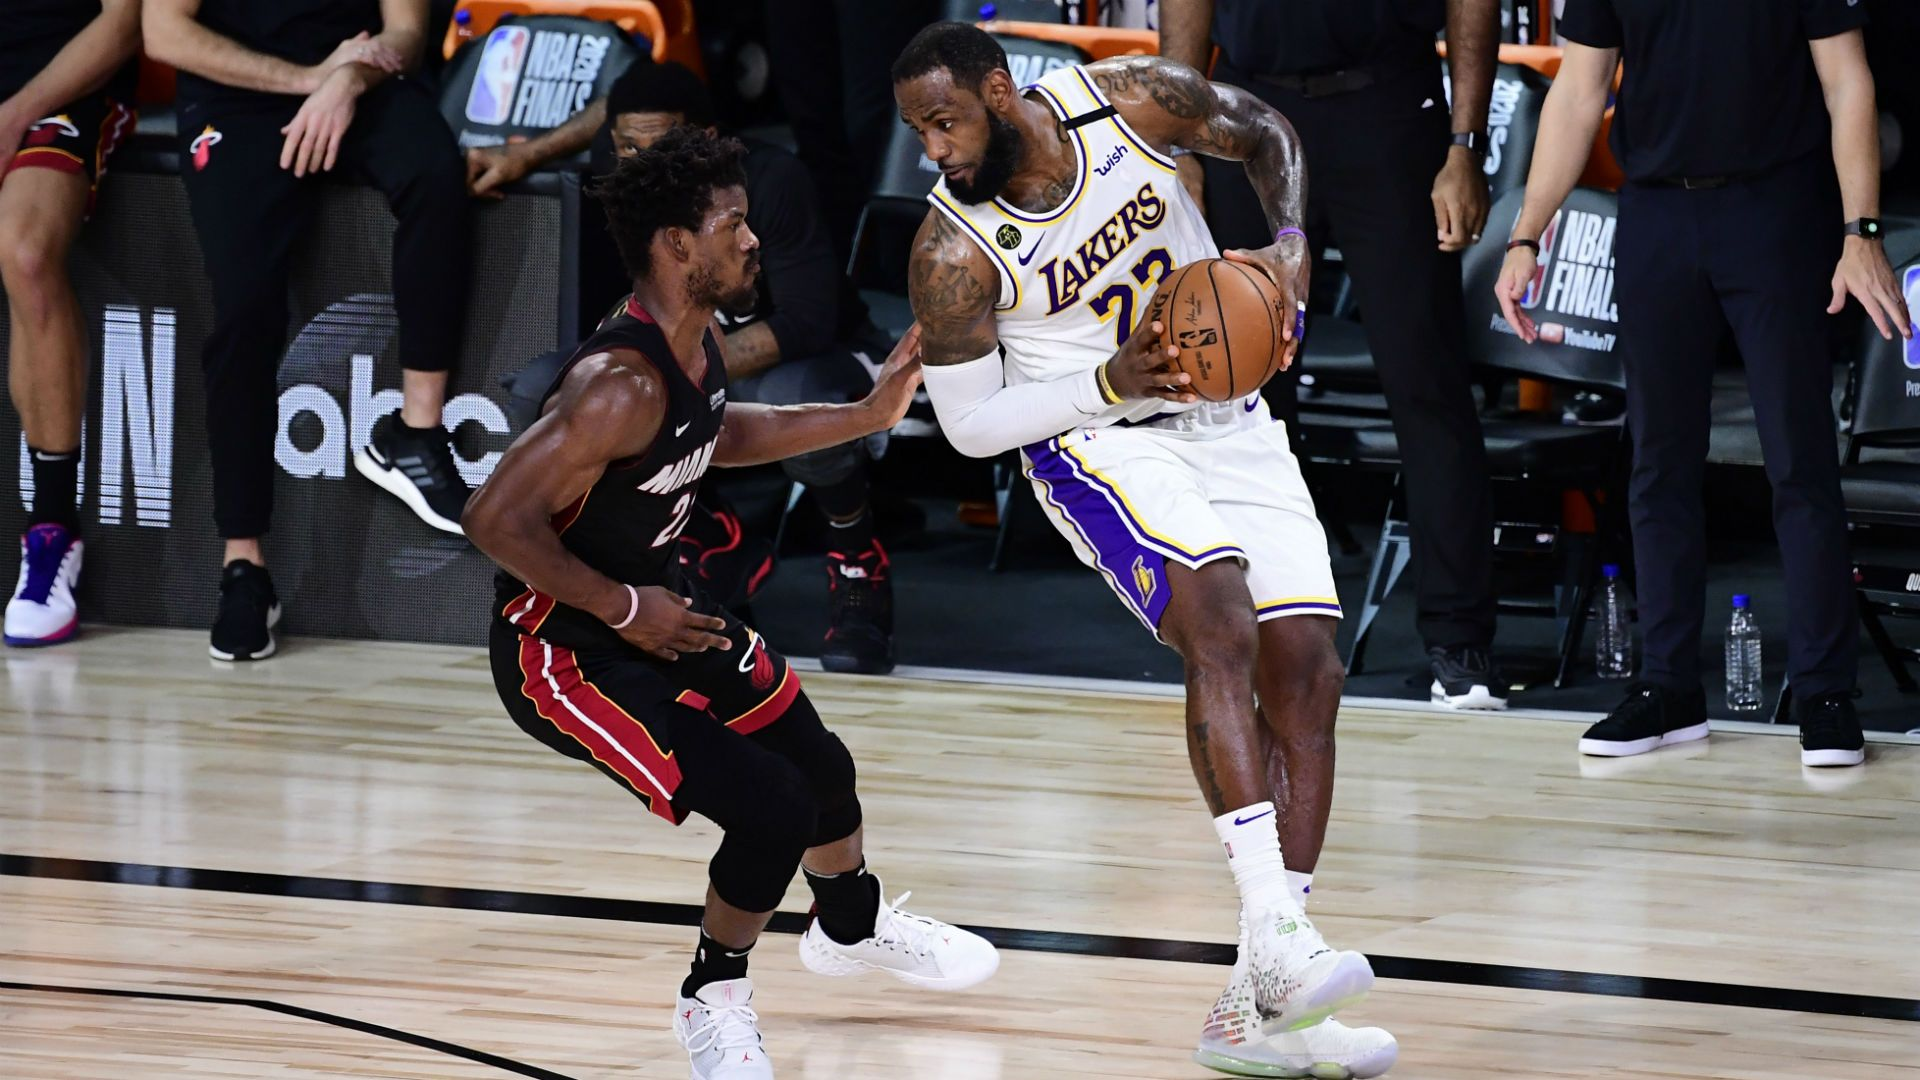 Game 6 Nba Finals 2020 La Lakers Away Vs Miami Heat Lakers 3 2 Won 106 93 Another Nba Championship 17 Over In 2020 Nba Championships Nba Champions Lakers